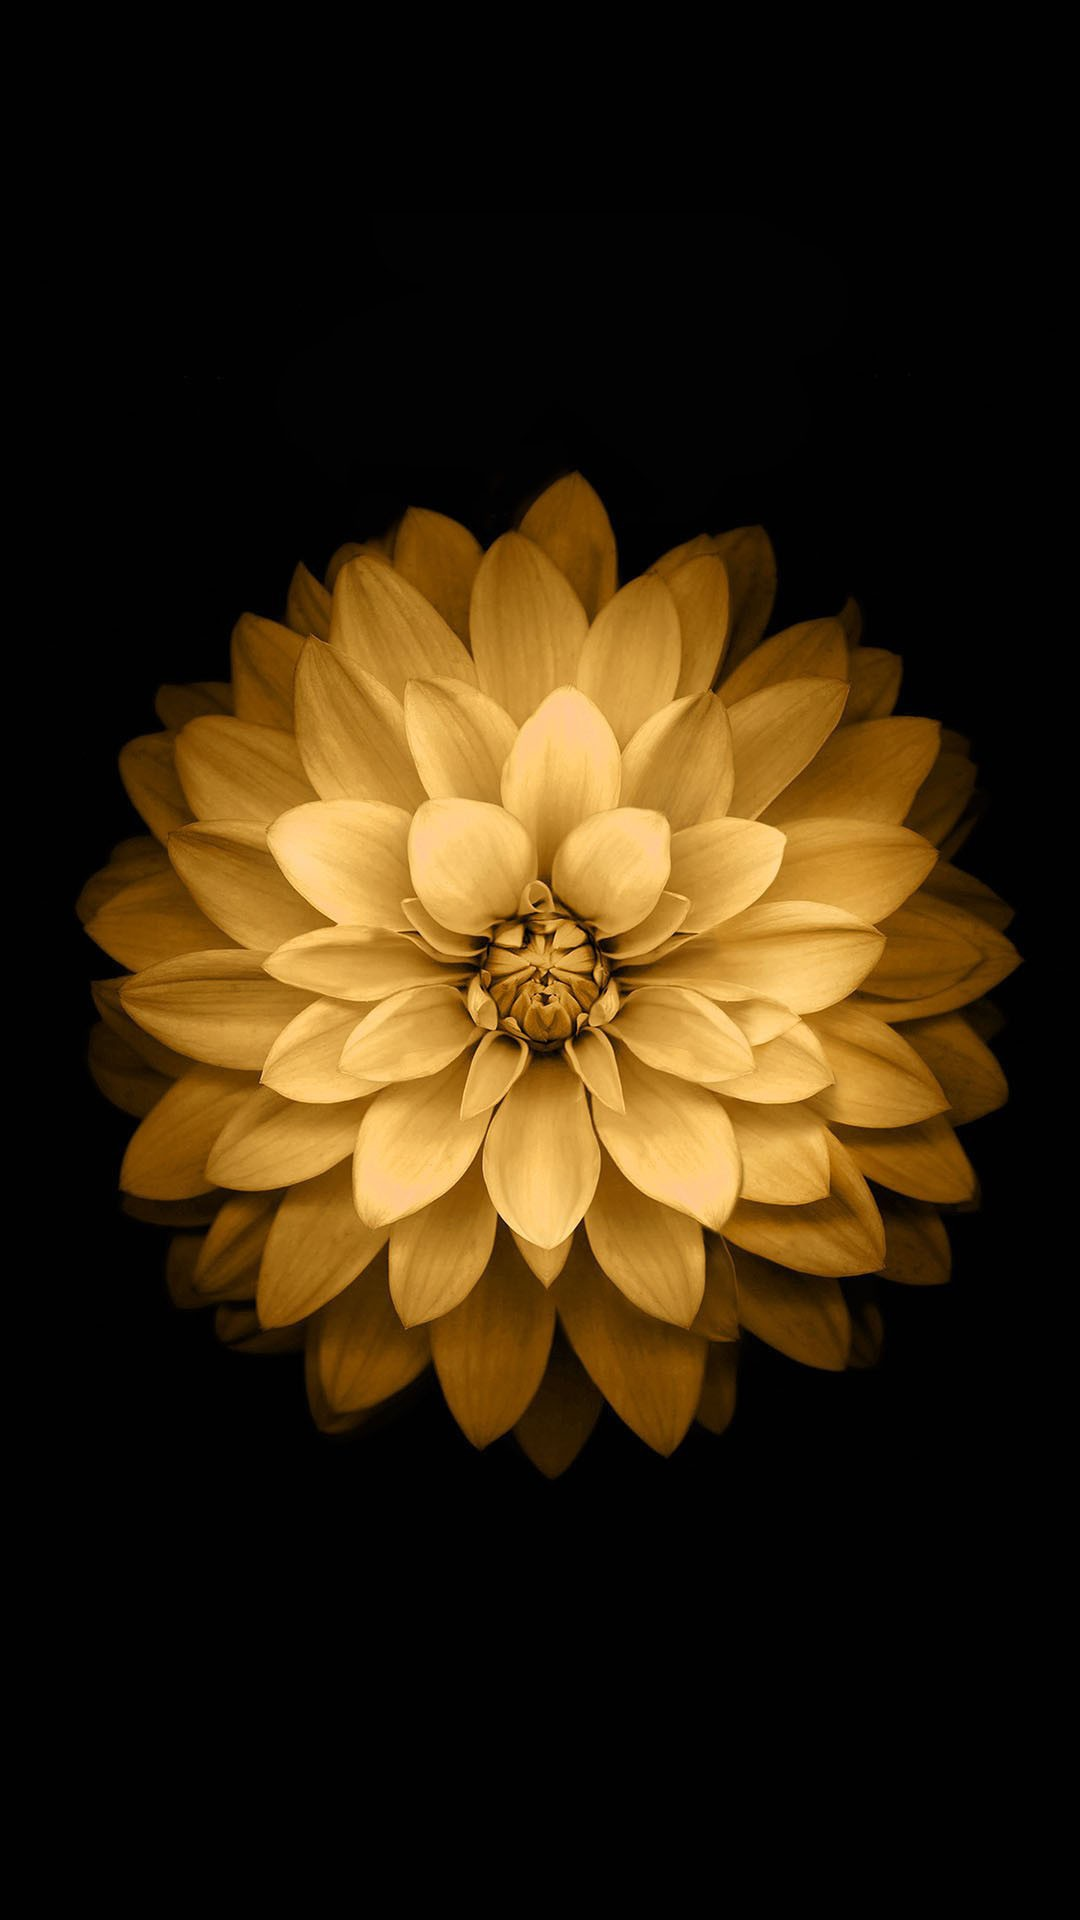 1080x1920 golden lotus flower ios android wallpaper